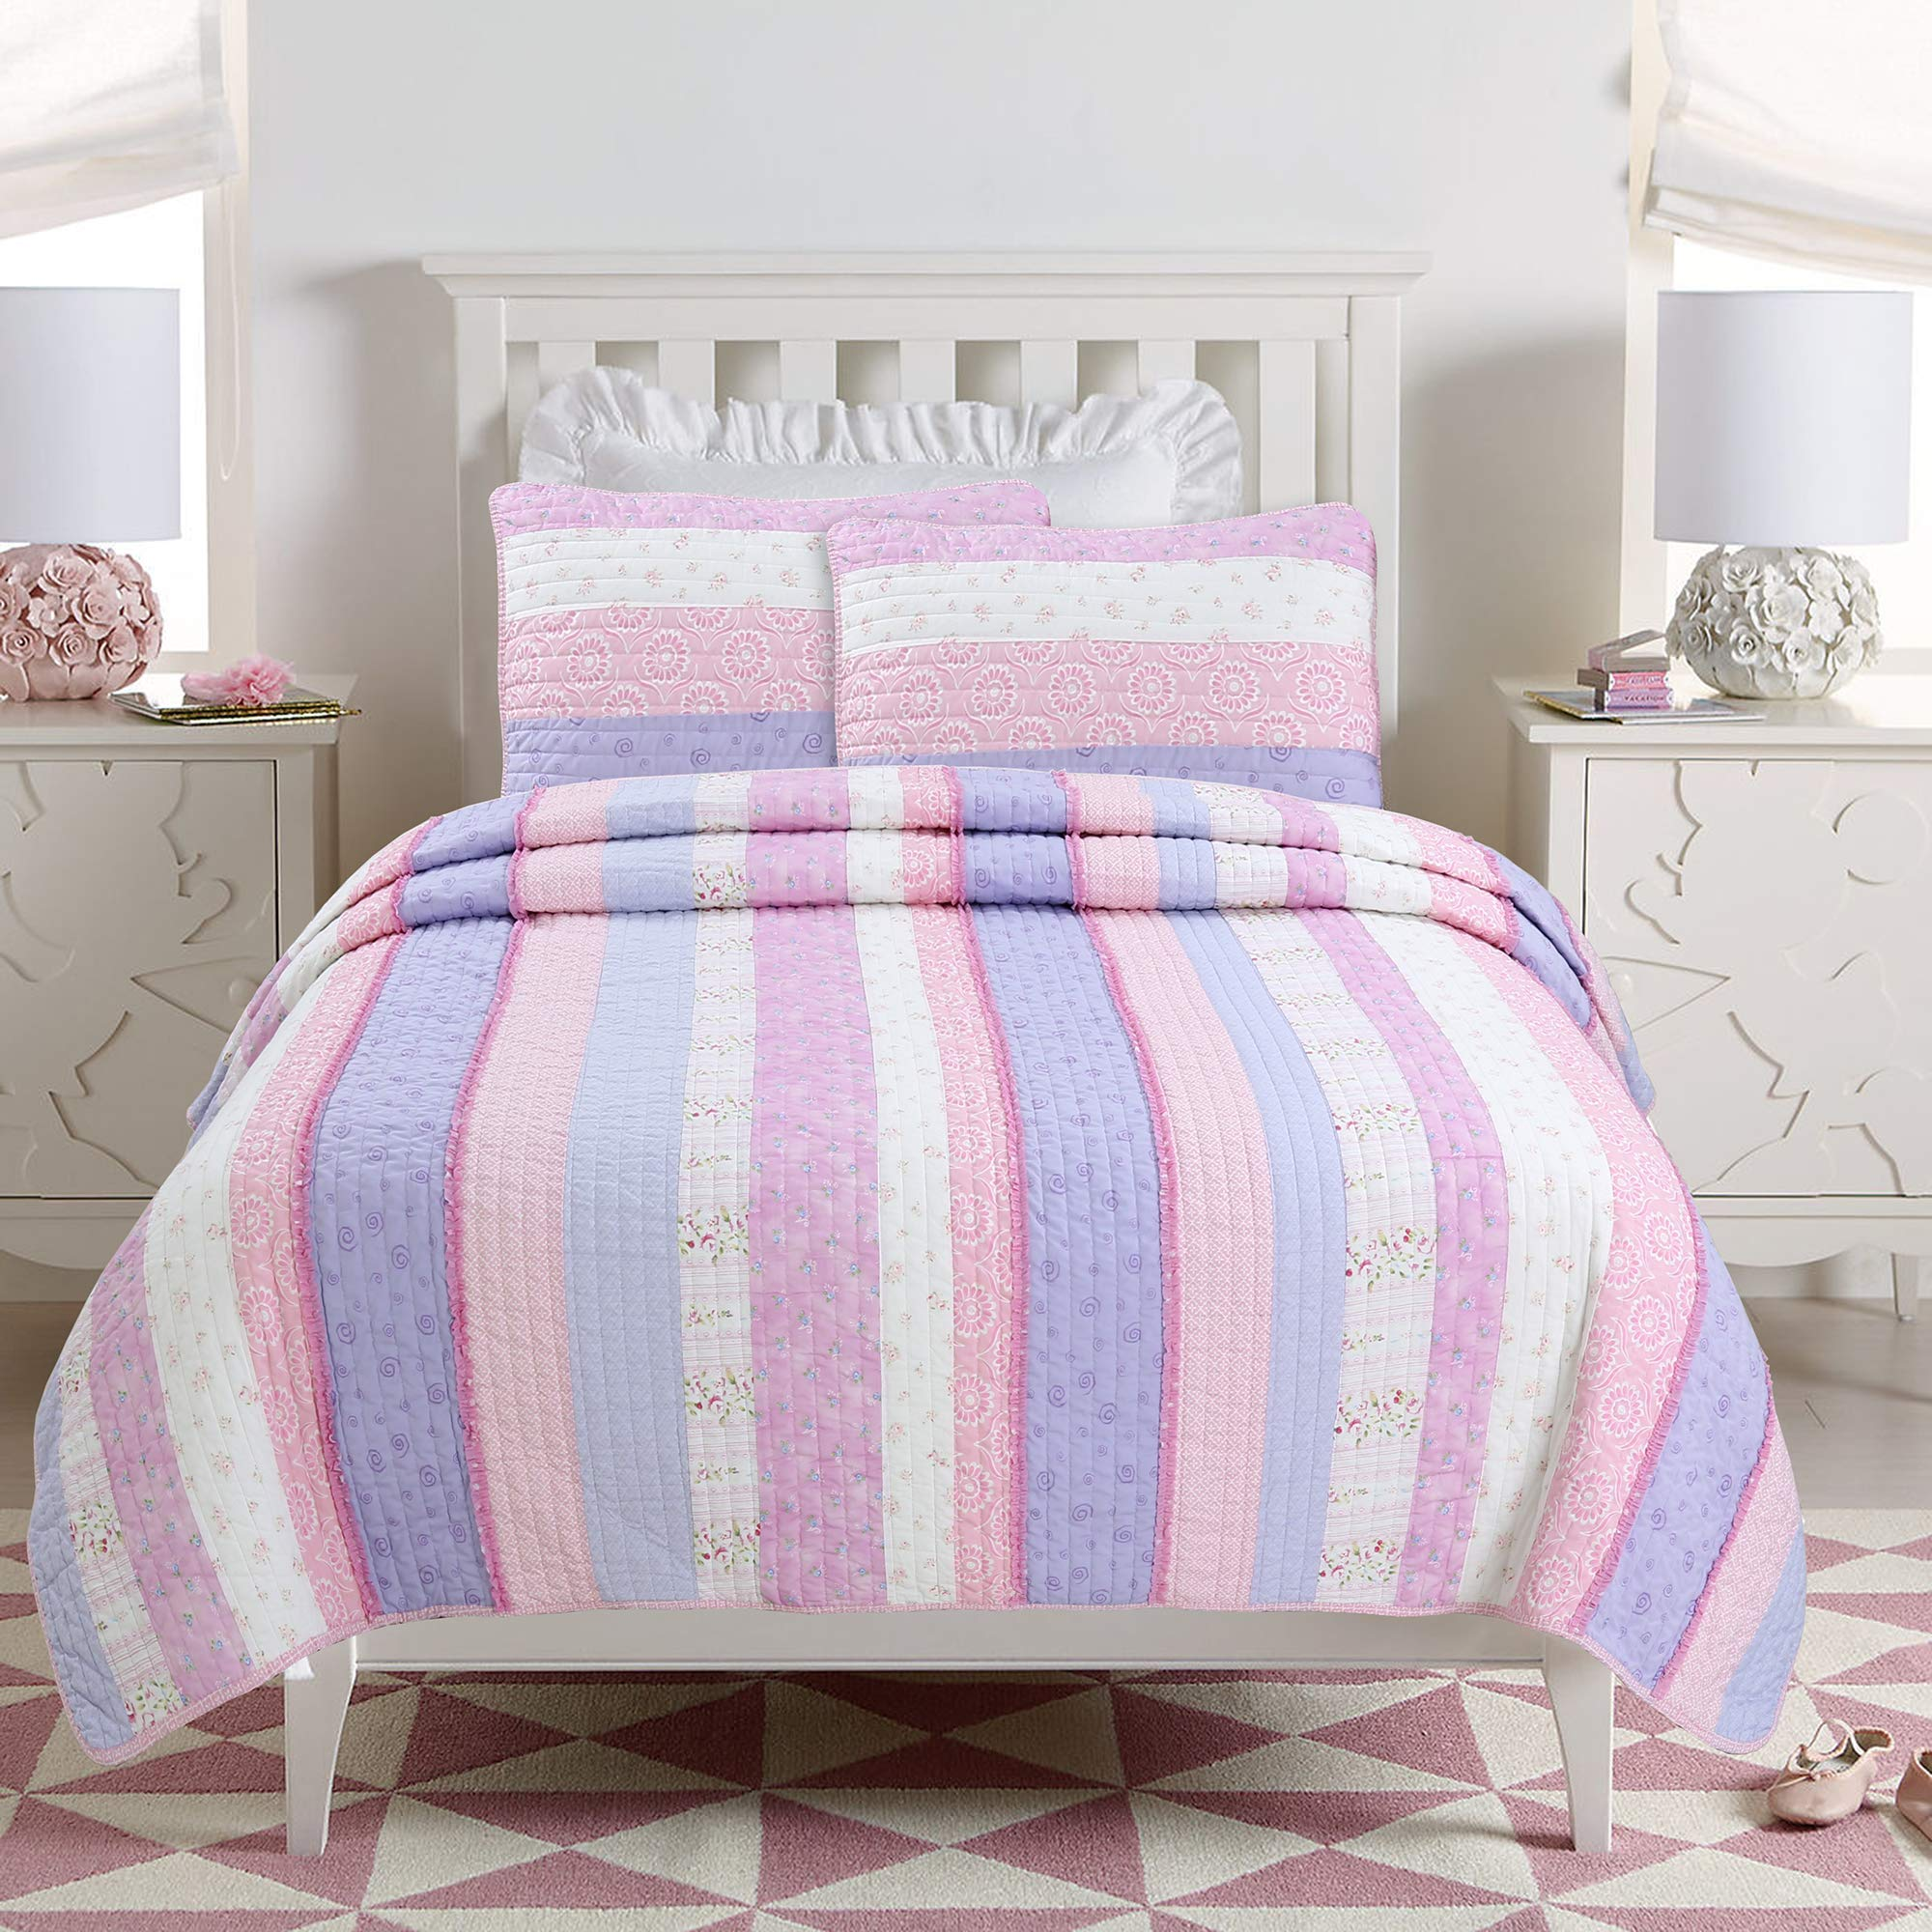 Cozy Line Home Fashions Eden Pink Lilac White Romantic Lace Floral Flower Pattern Print Striped 100% Cotton Bedding Quilt Set Reversible Coverlet Bedspread for Girl (Lilac Stripe, Full/Queen -3 piece)